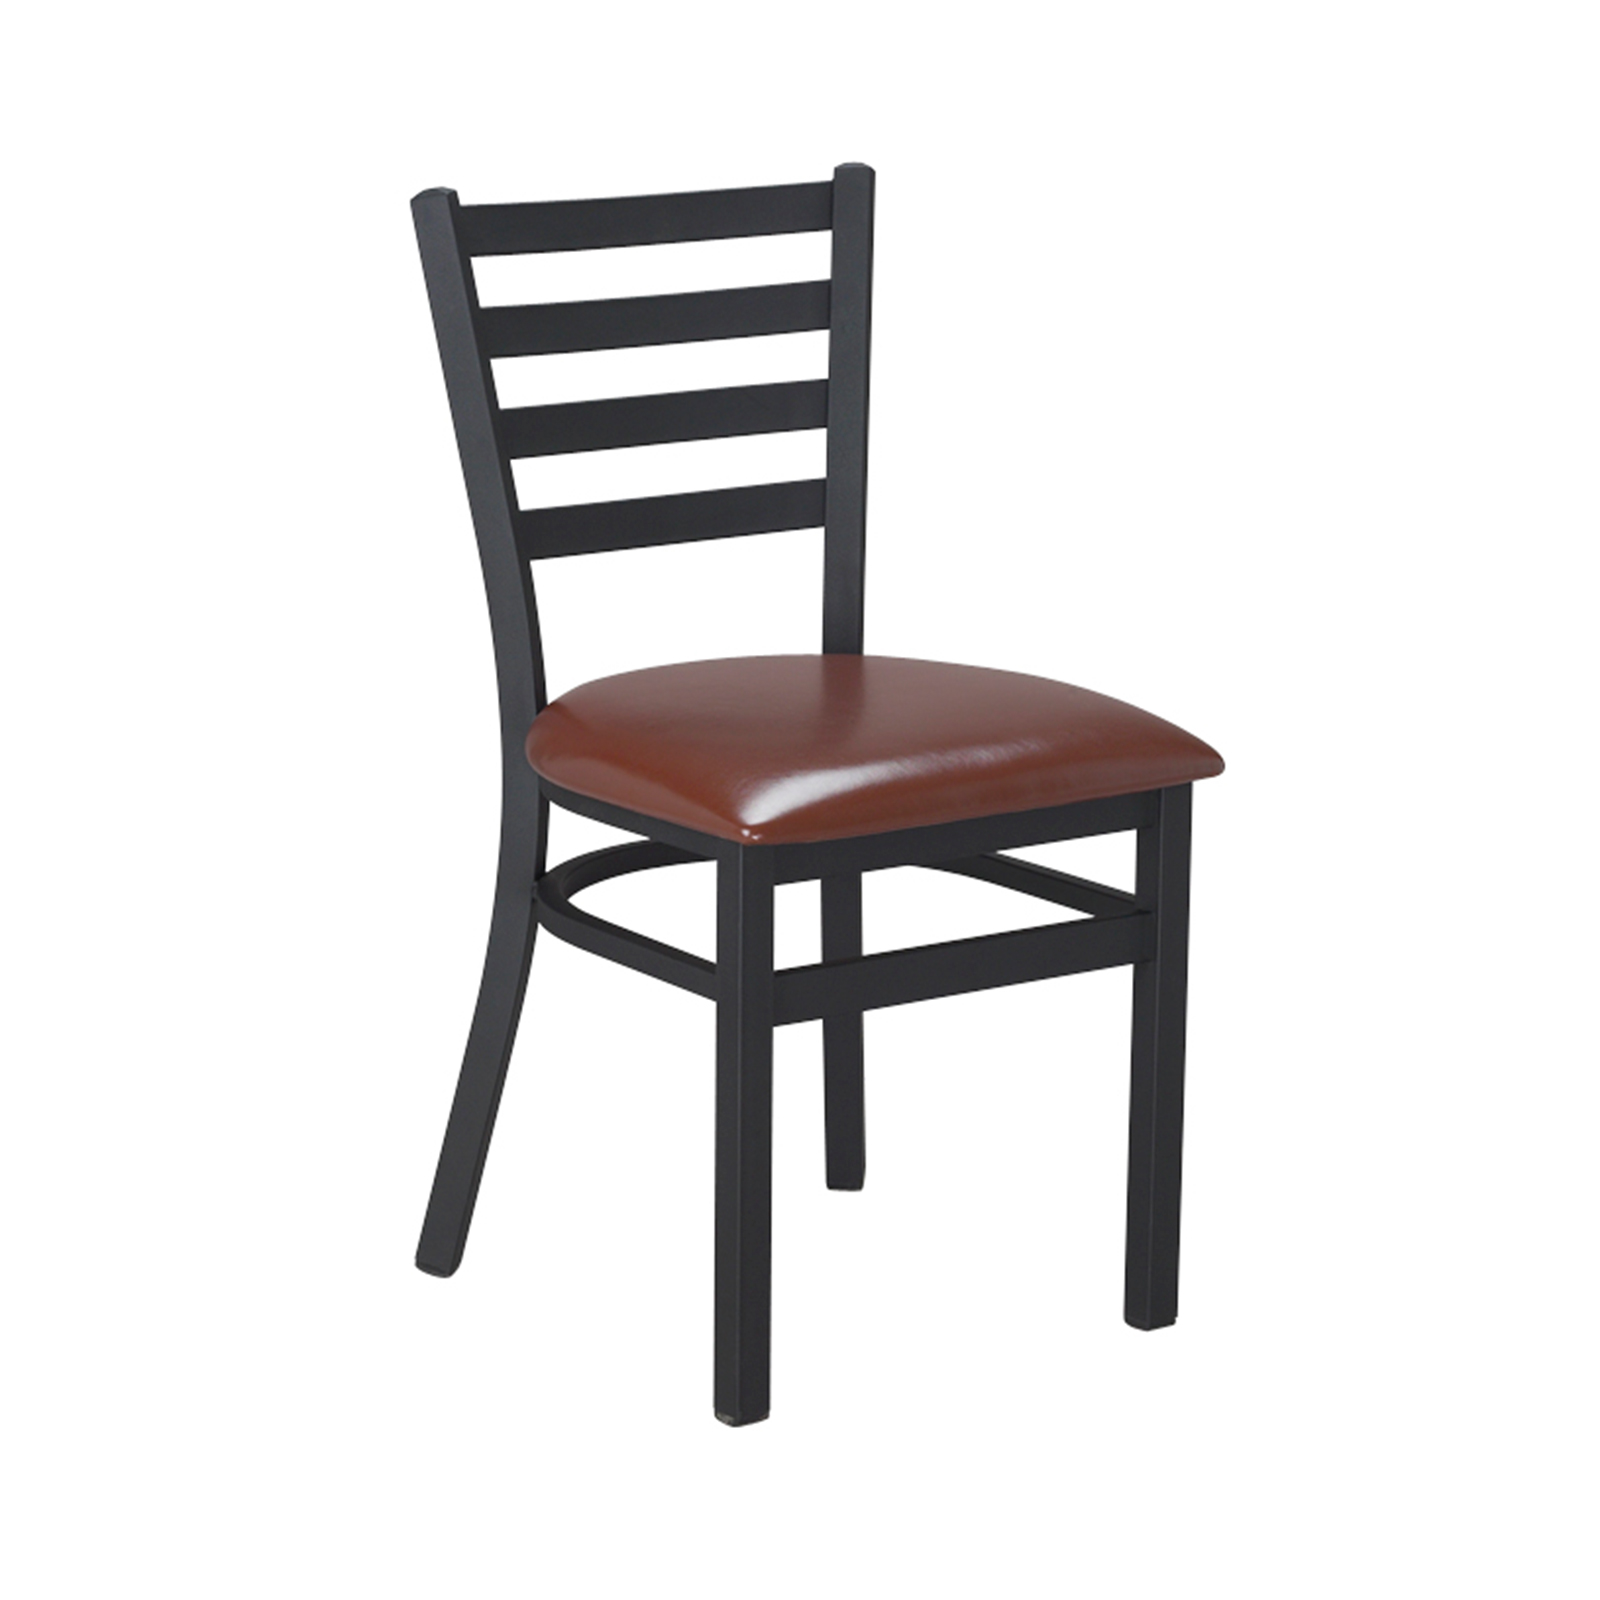 G & A Commercial Seating 513-B PS chair, side, indoor